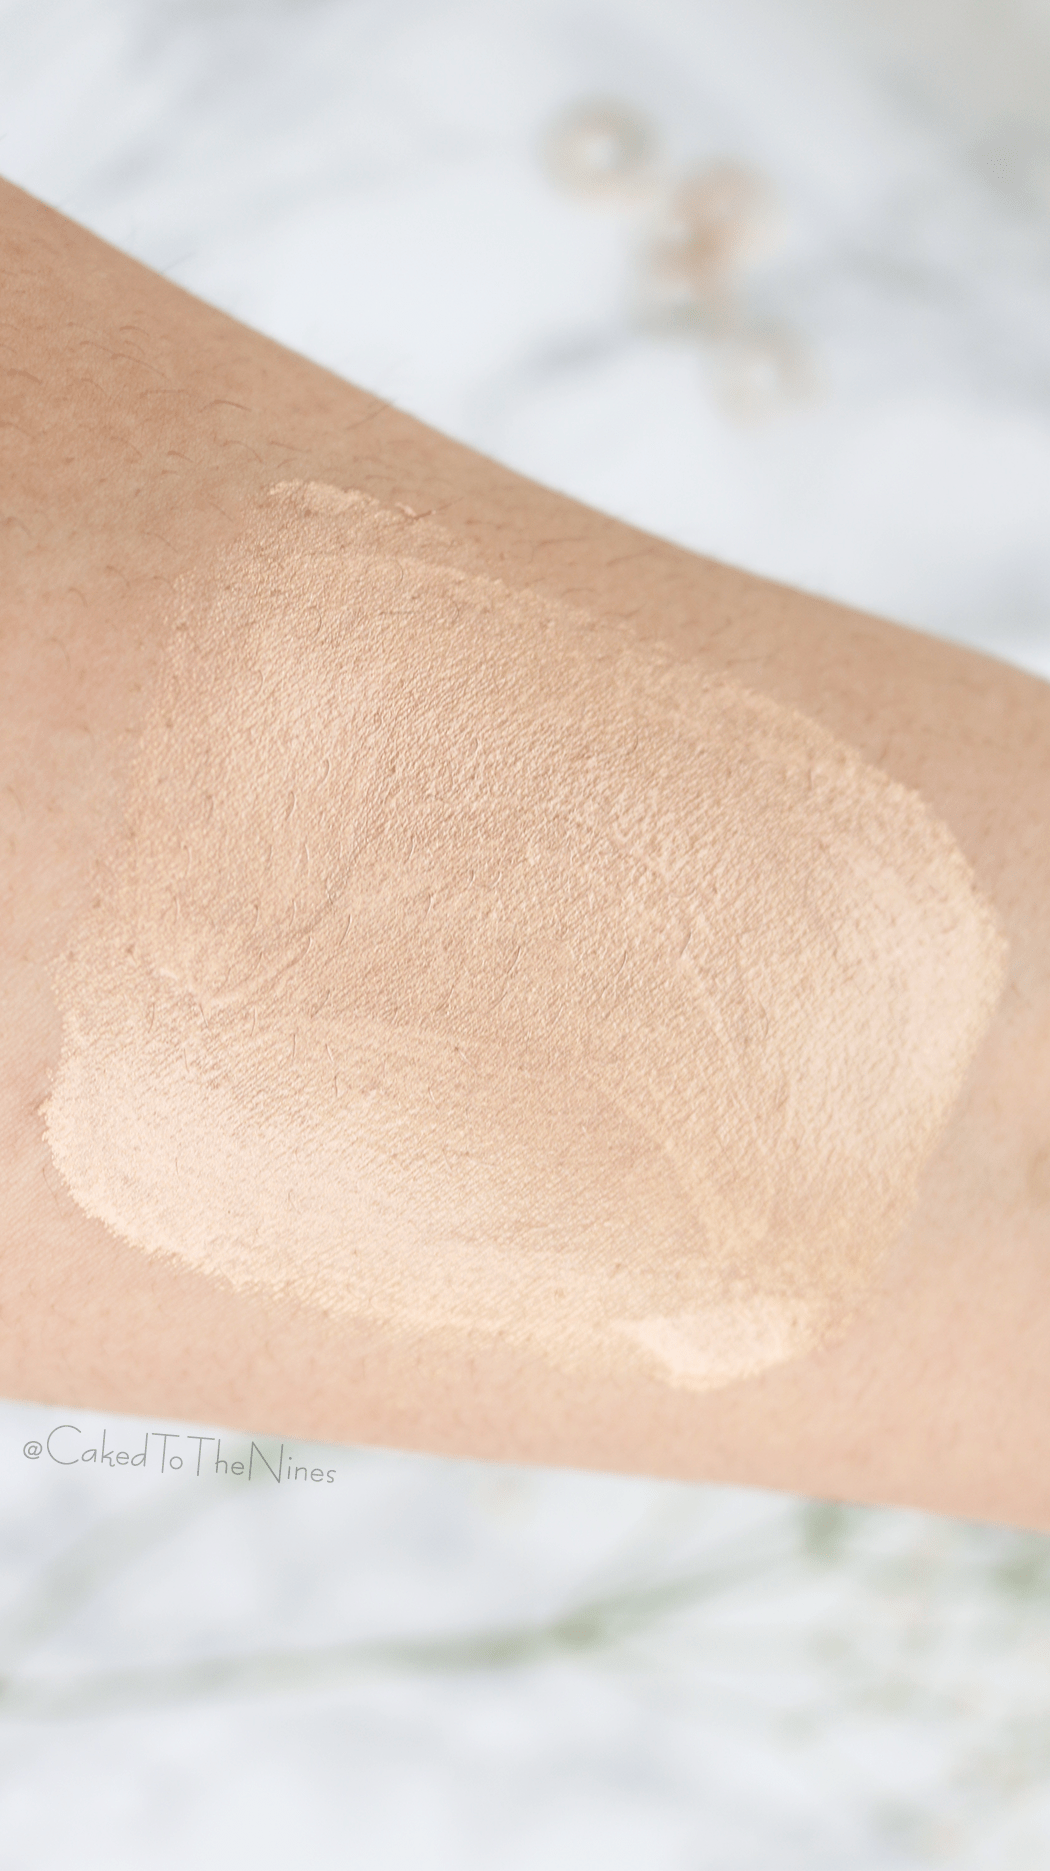 Dior Glow Maximizer Primer Review and swatches